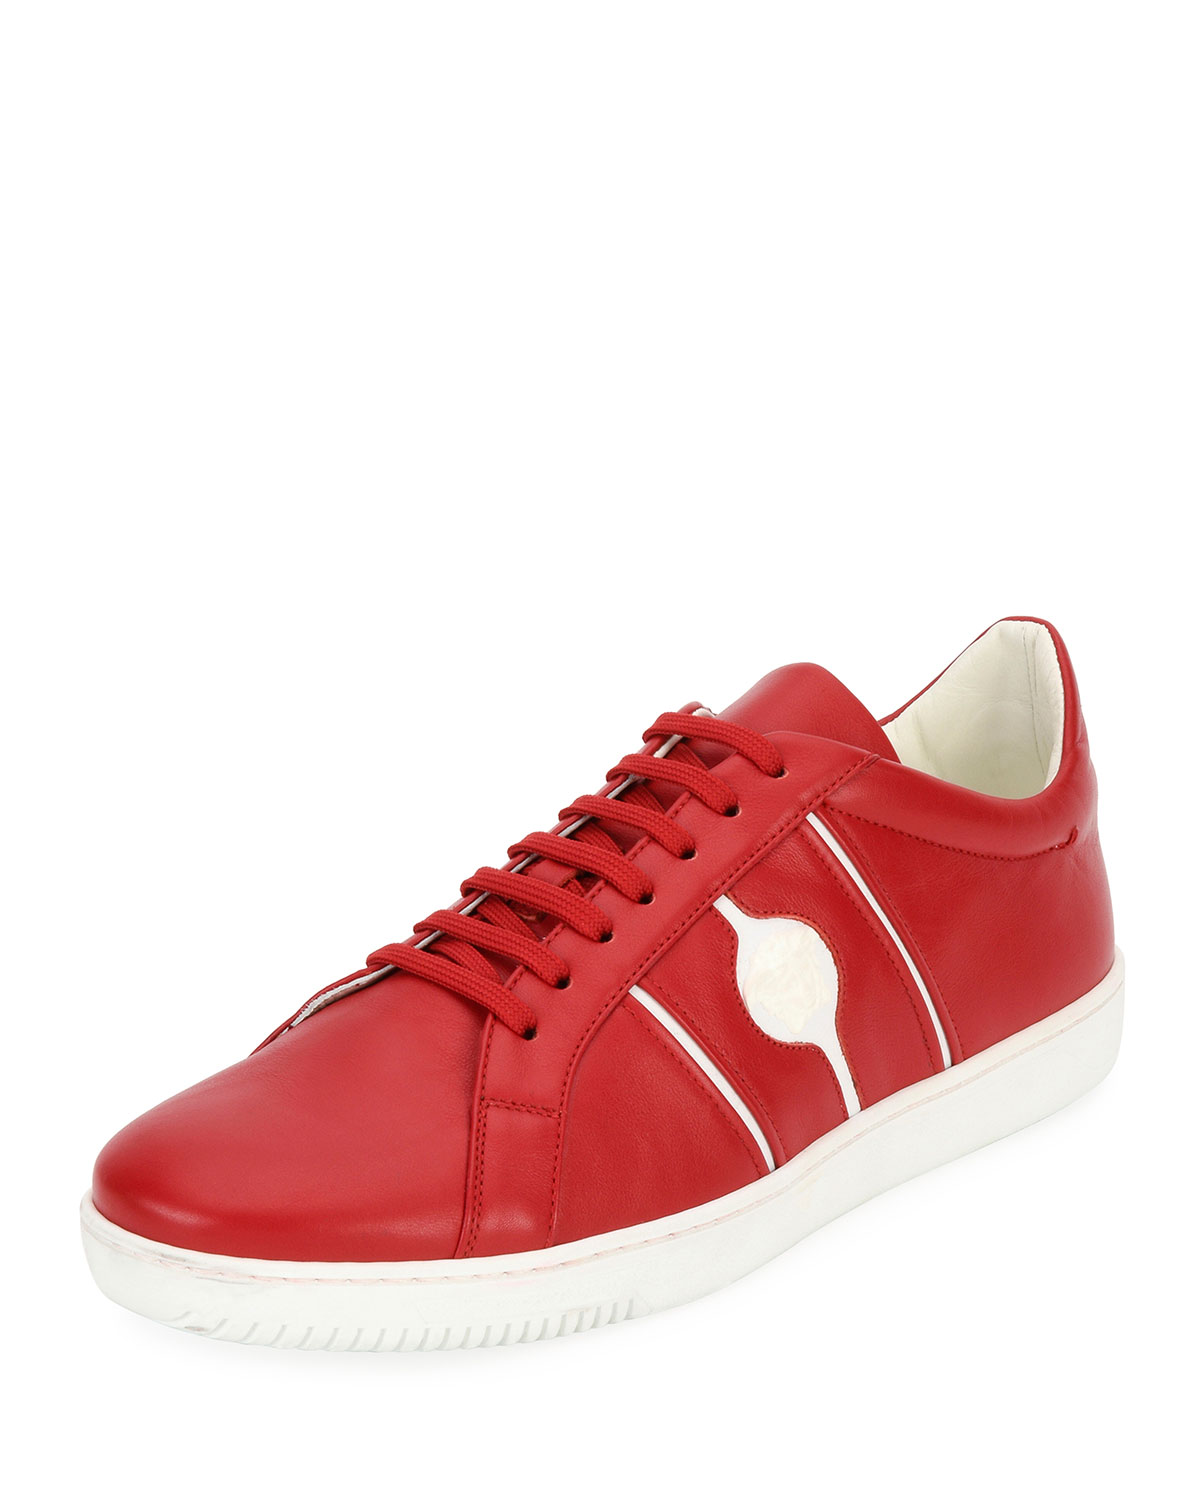 Versace Men's Medusa Leather Low-Top Sneakers, Red ...